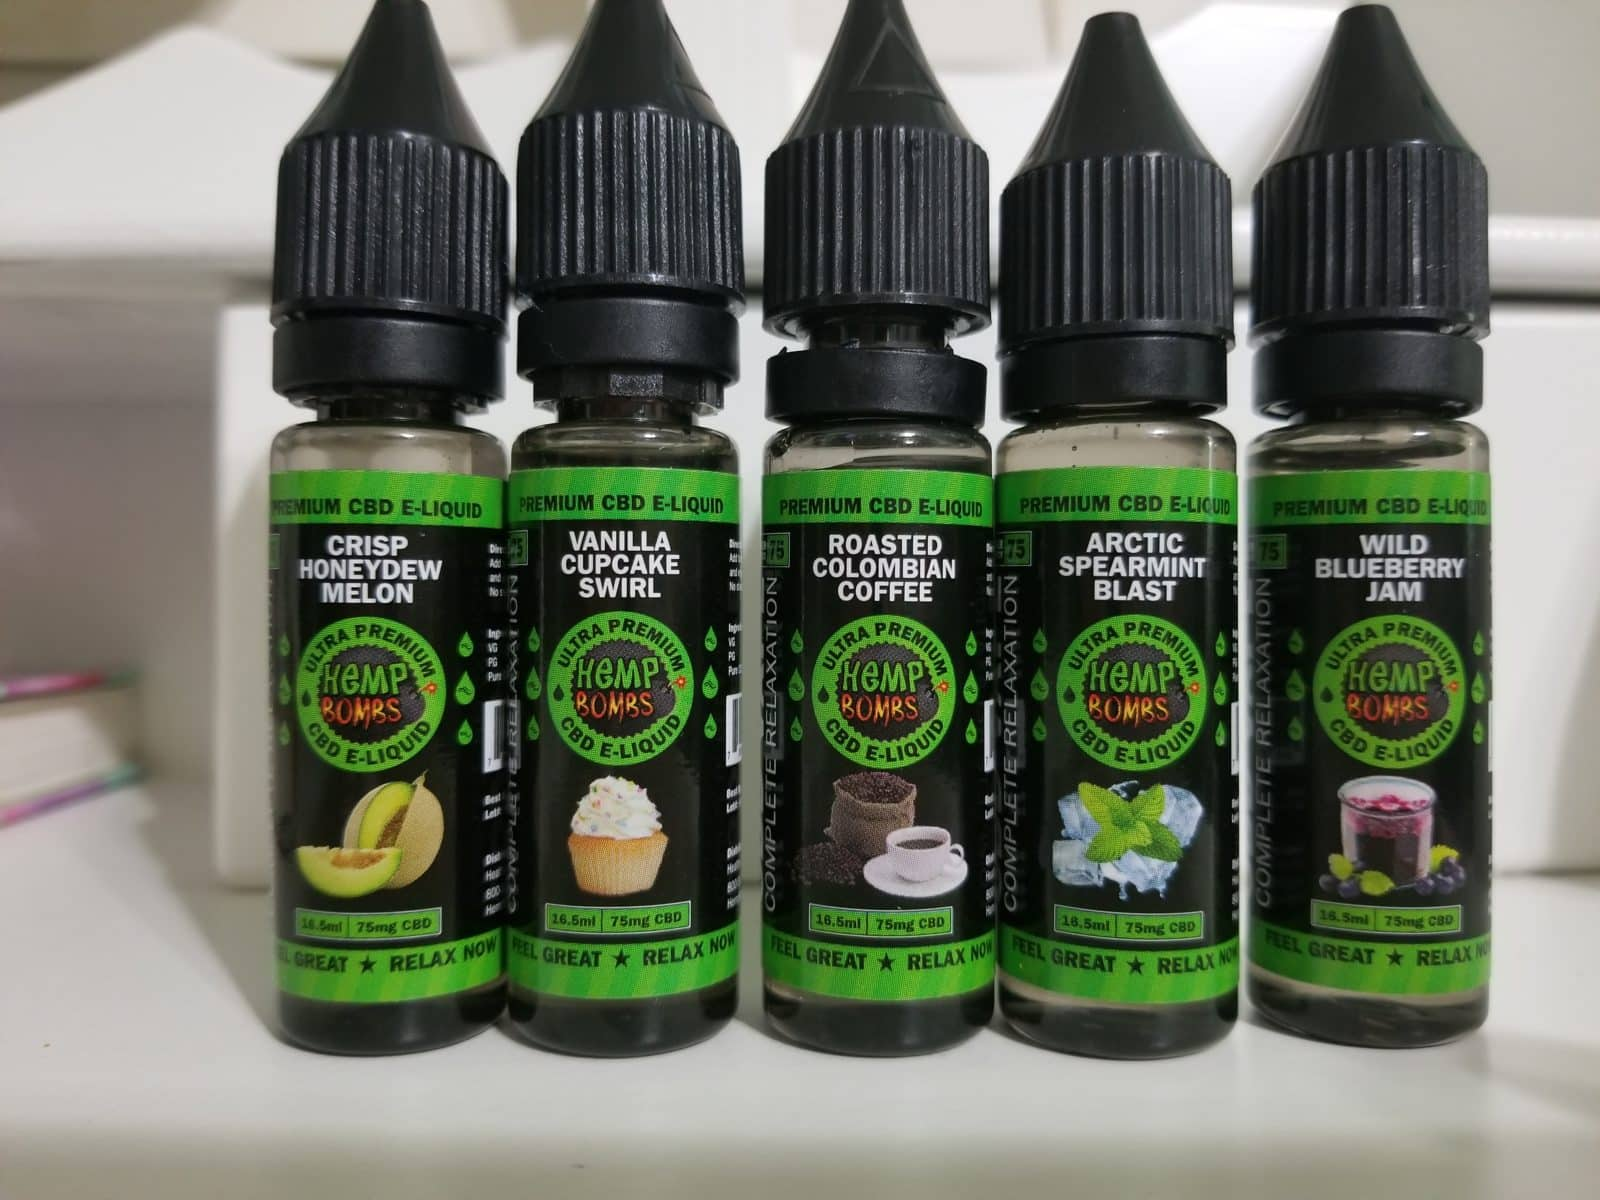 Hemp bombs juice